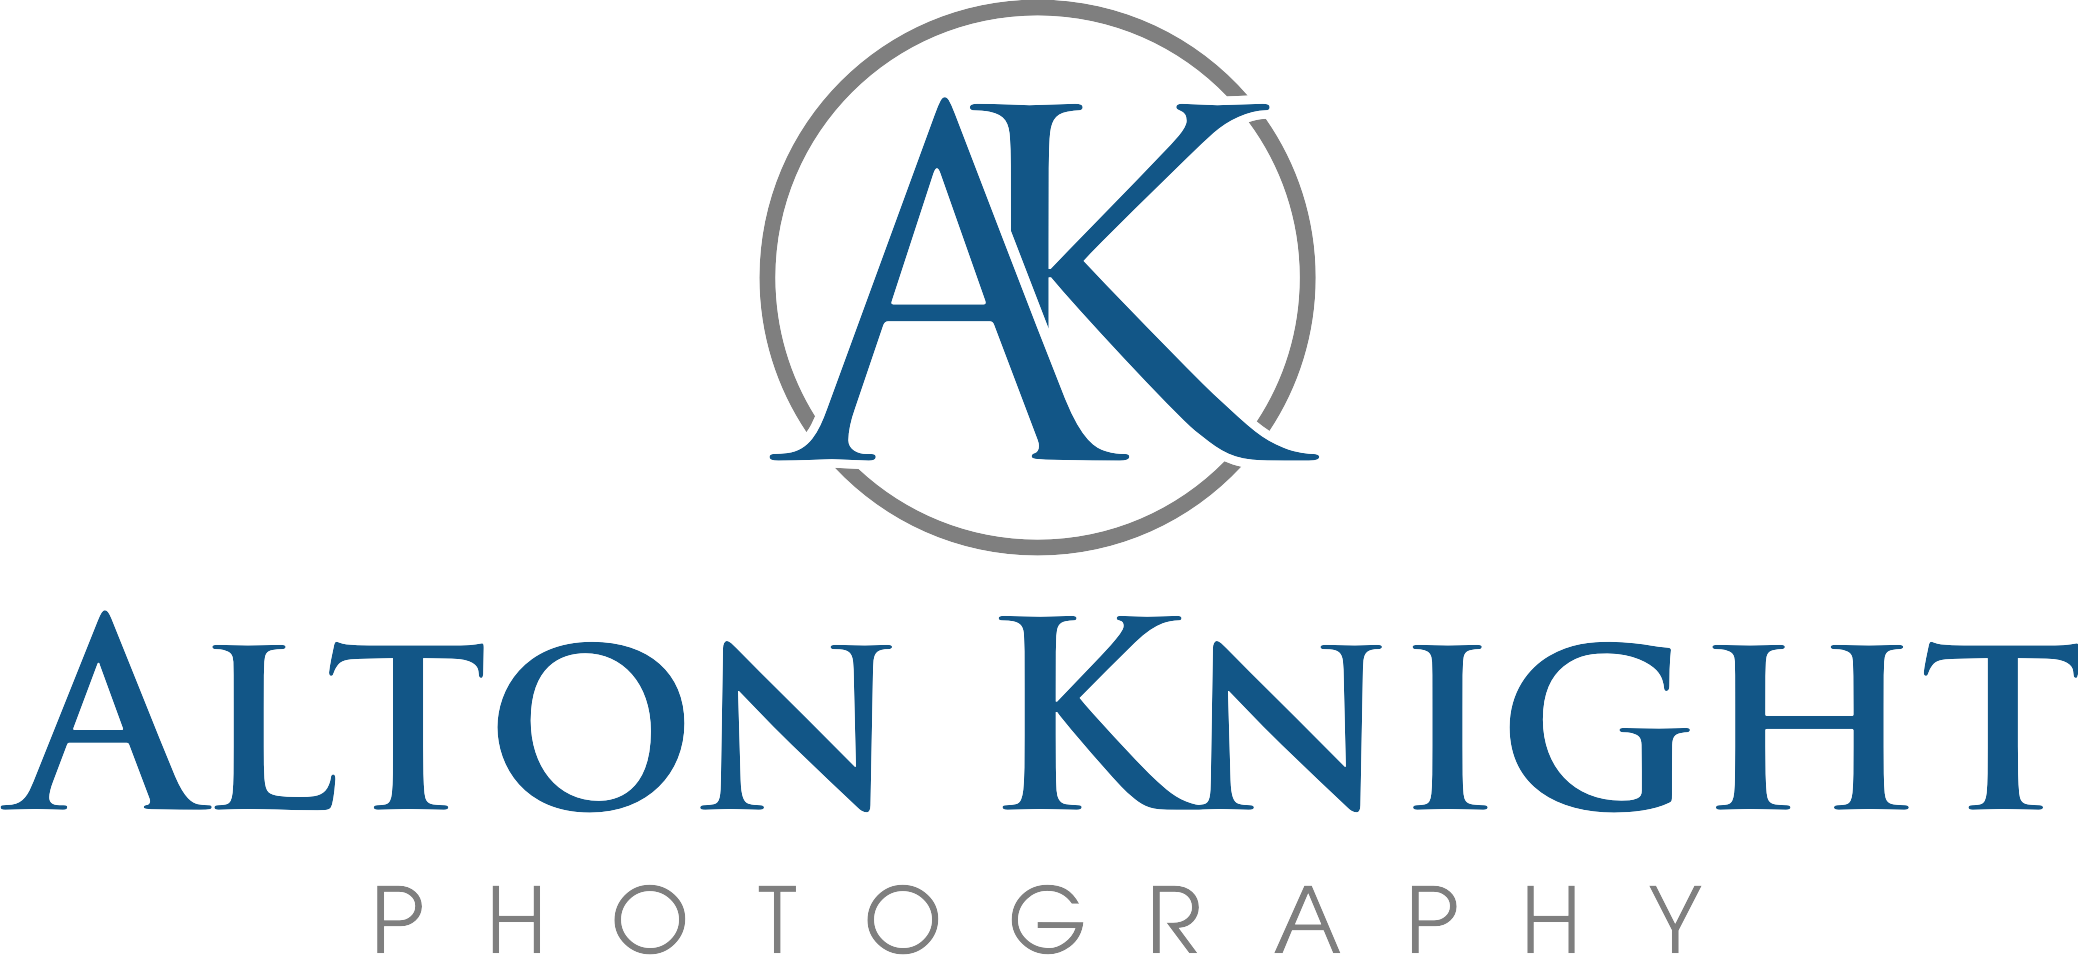 Alton Knight Photography